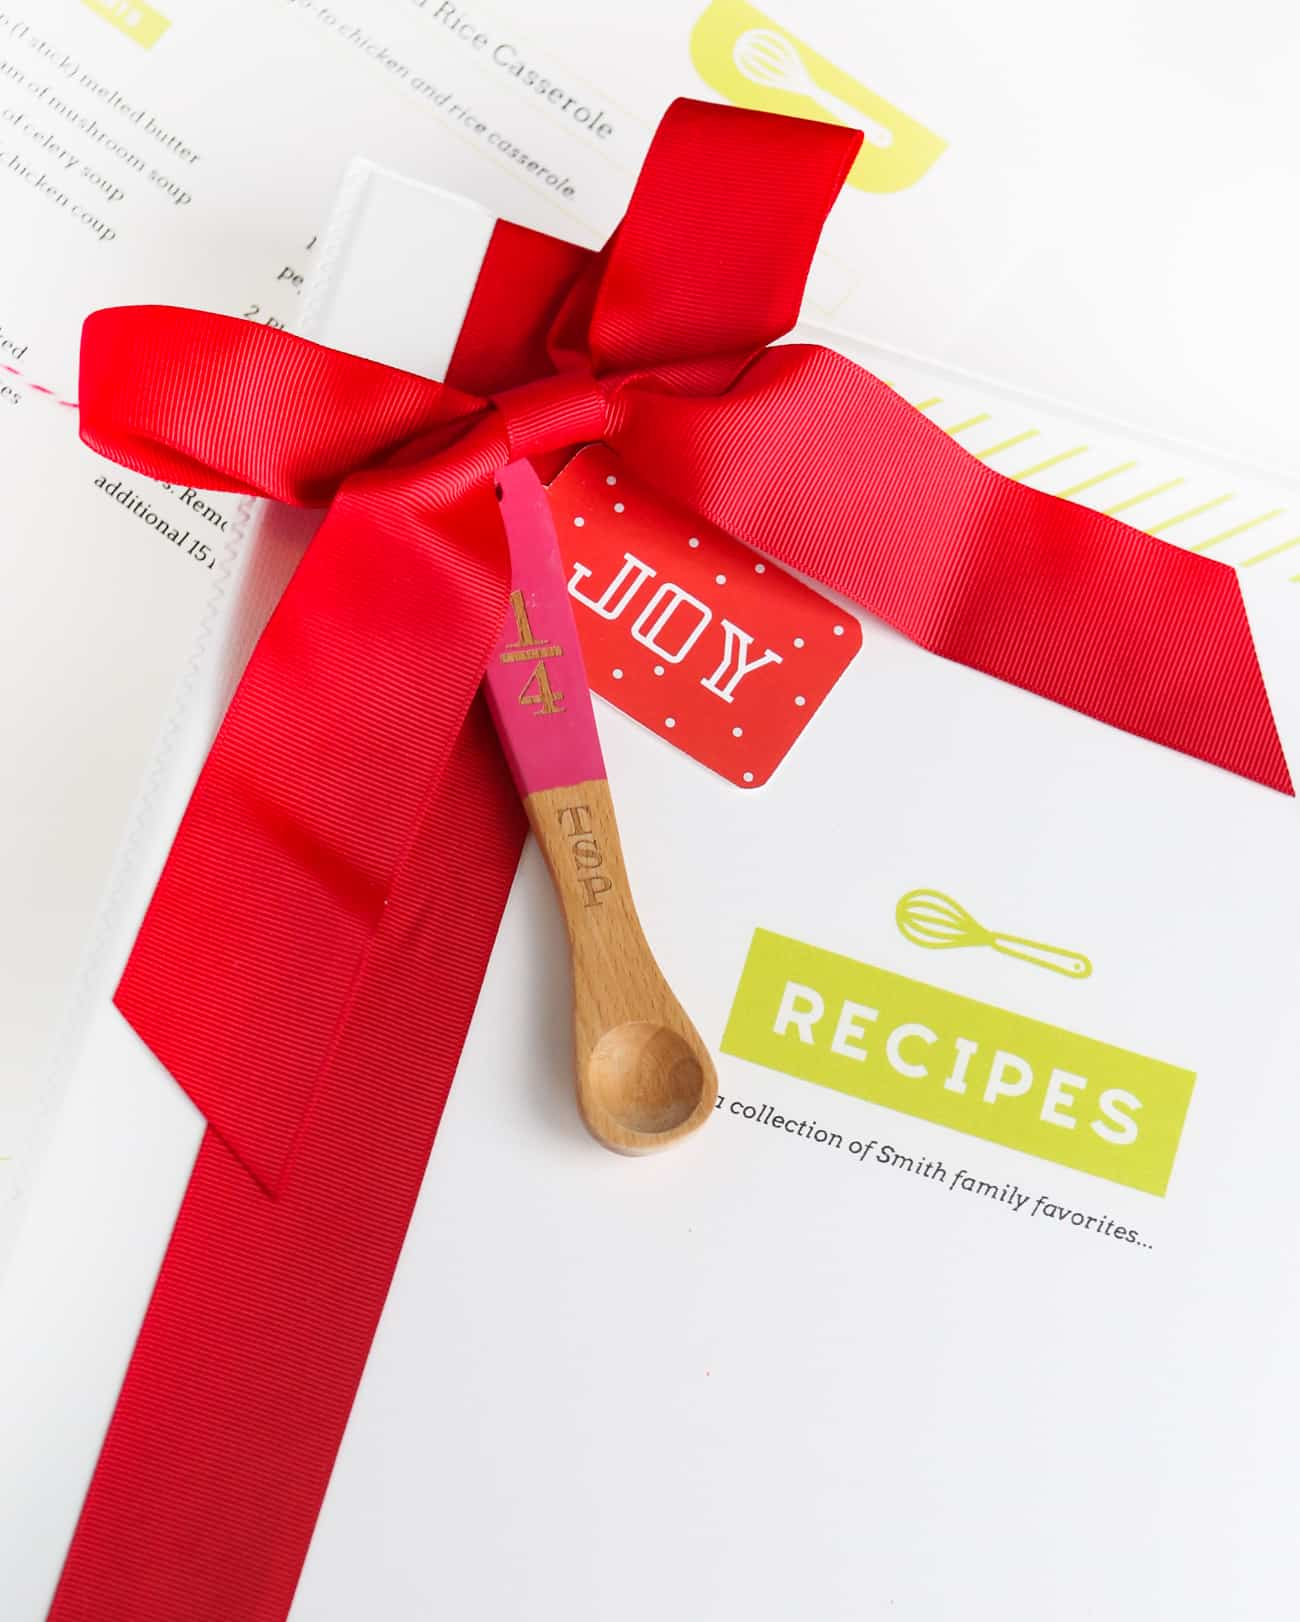 Organize your favorite recipes into a DIY recipe book with these fun and free printable recipe binder kit templates! Perfect for gifting to friends or family or just as a way to organize your favorite family recipes.